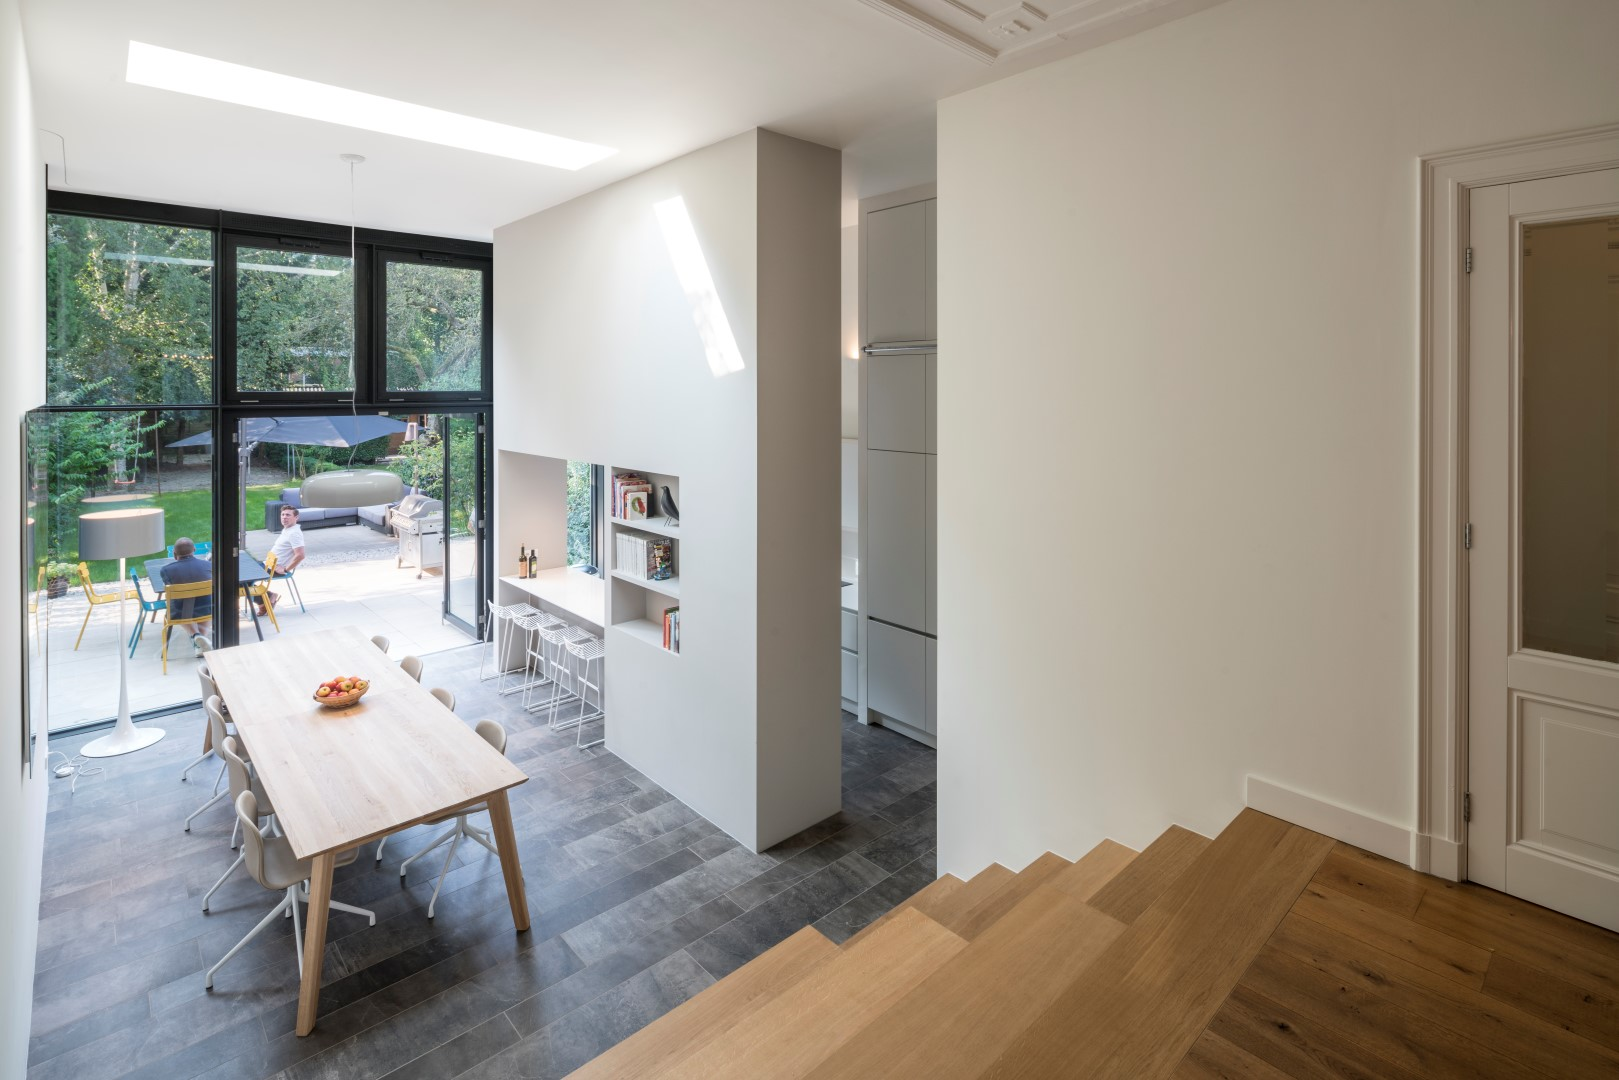 the ground floor extension with the wide tribune creating a gentle flow between the living room and garden level